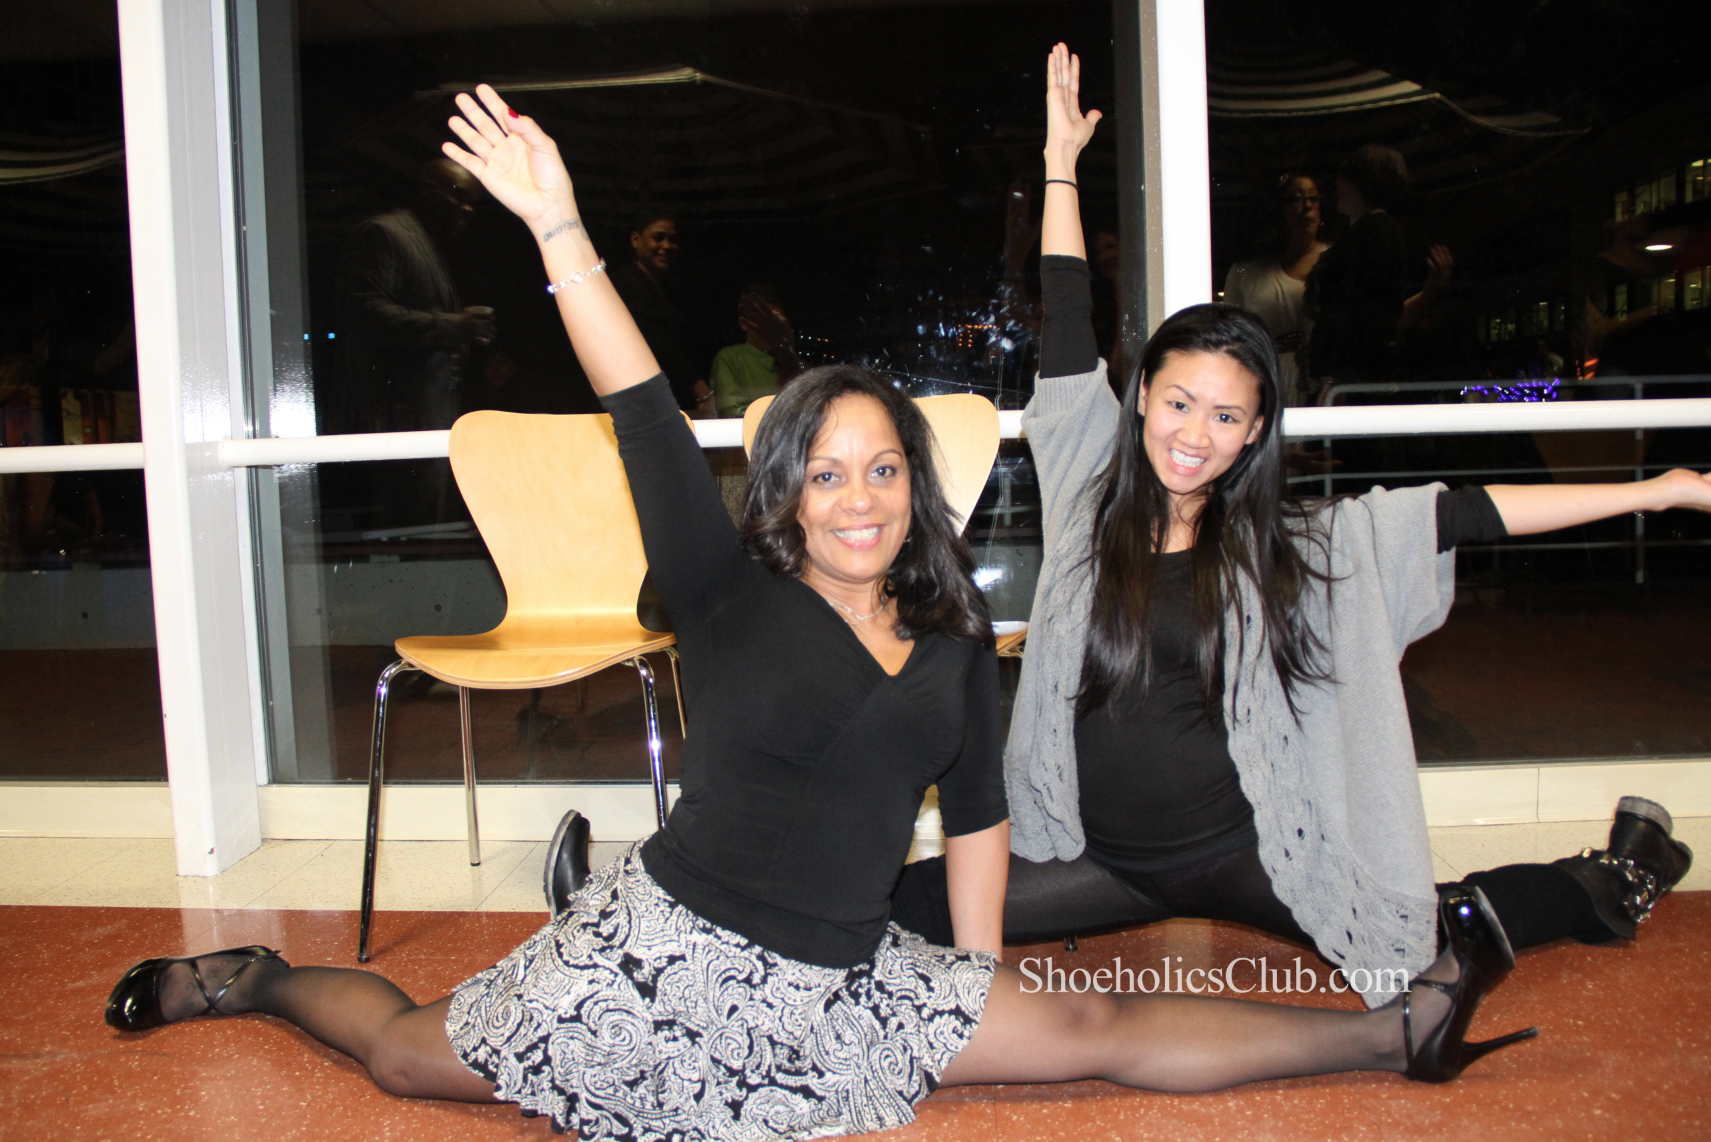 Joyce and Cindy showing just how flexible they can be in their heels! WOW!